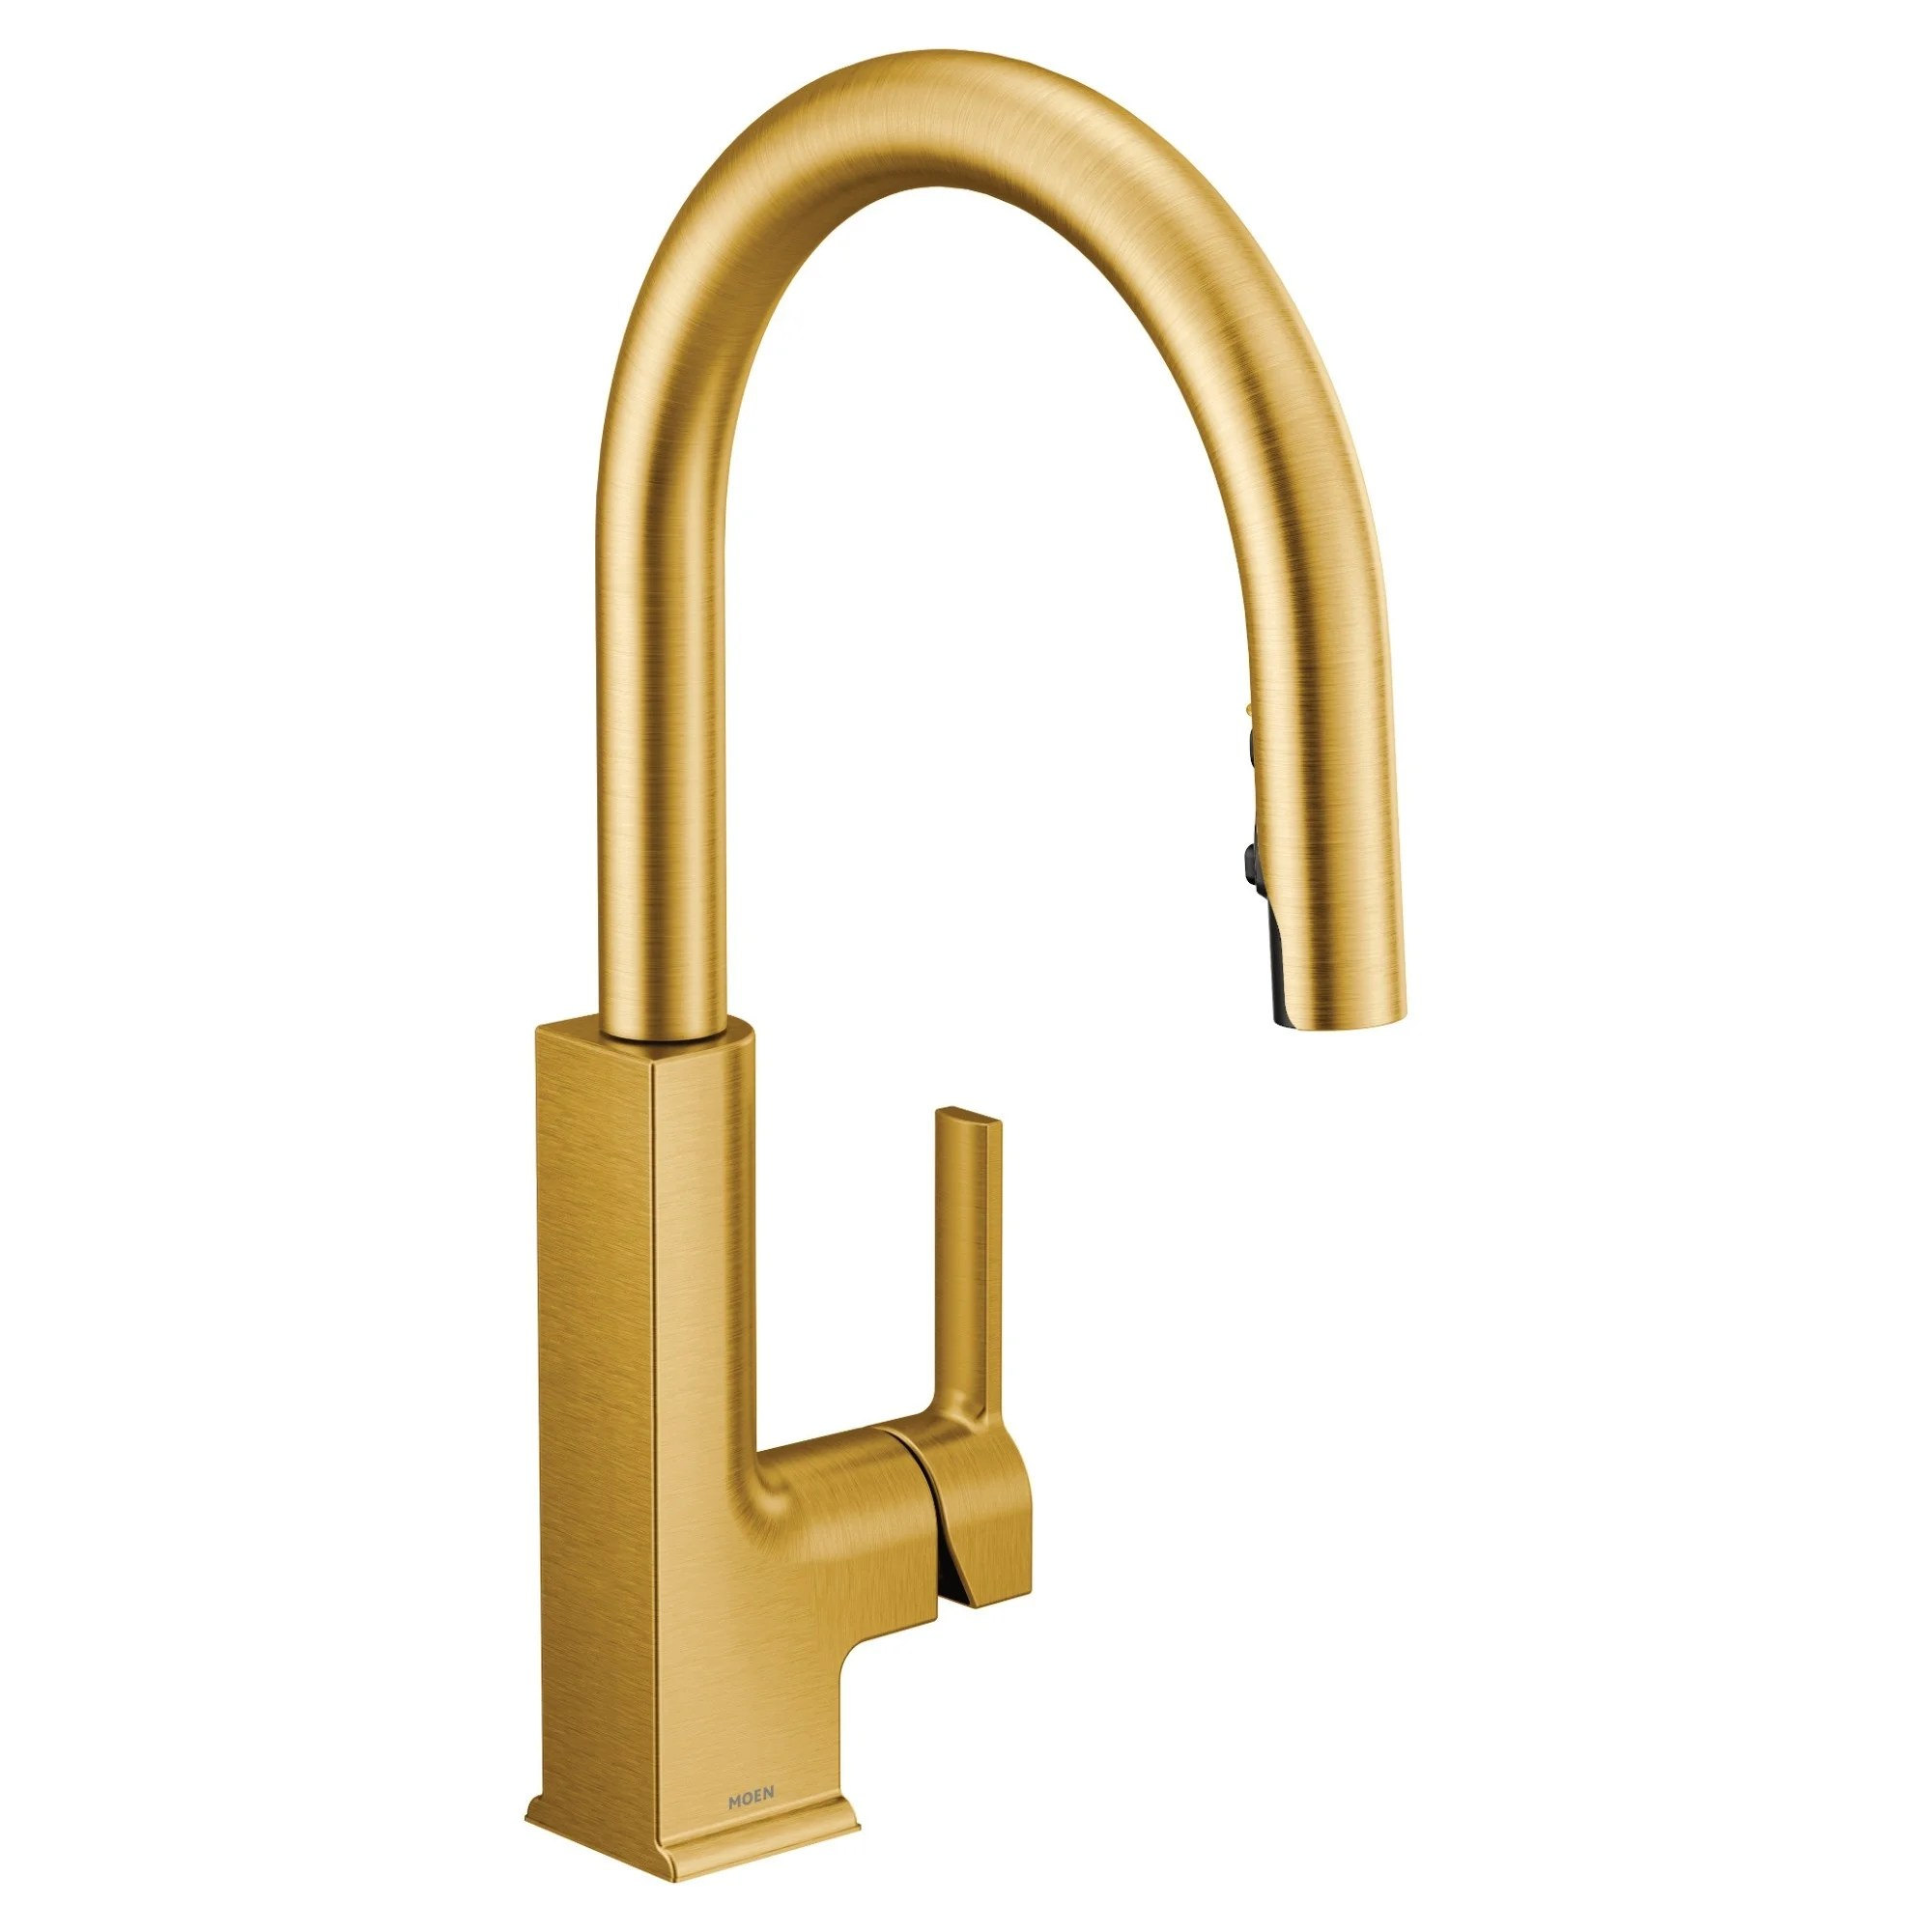 moen one handle pulldown kitchen faucet brushed gold s72308bg